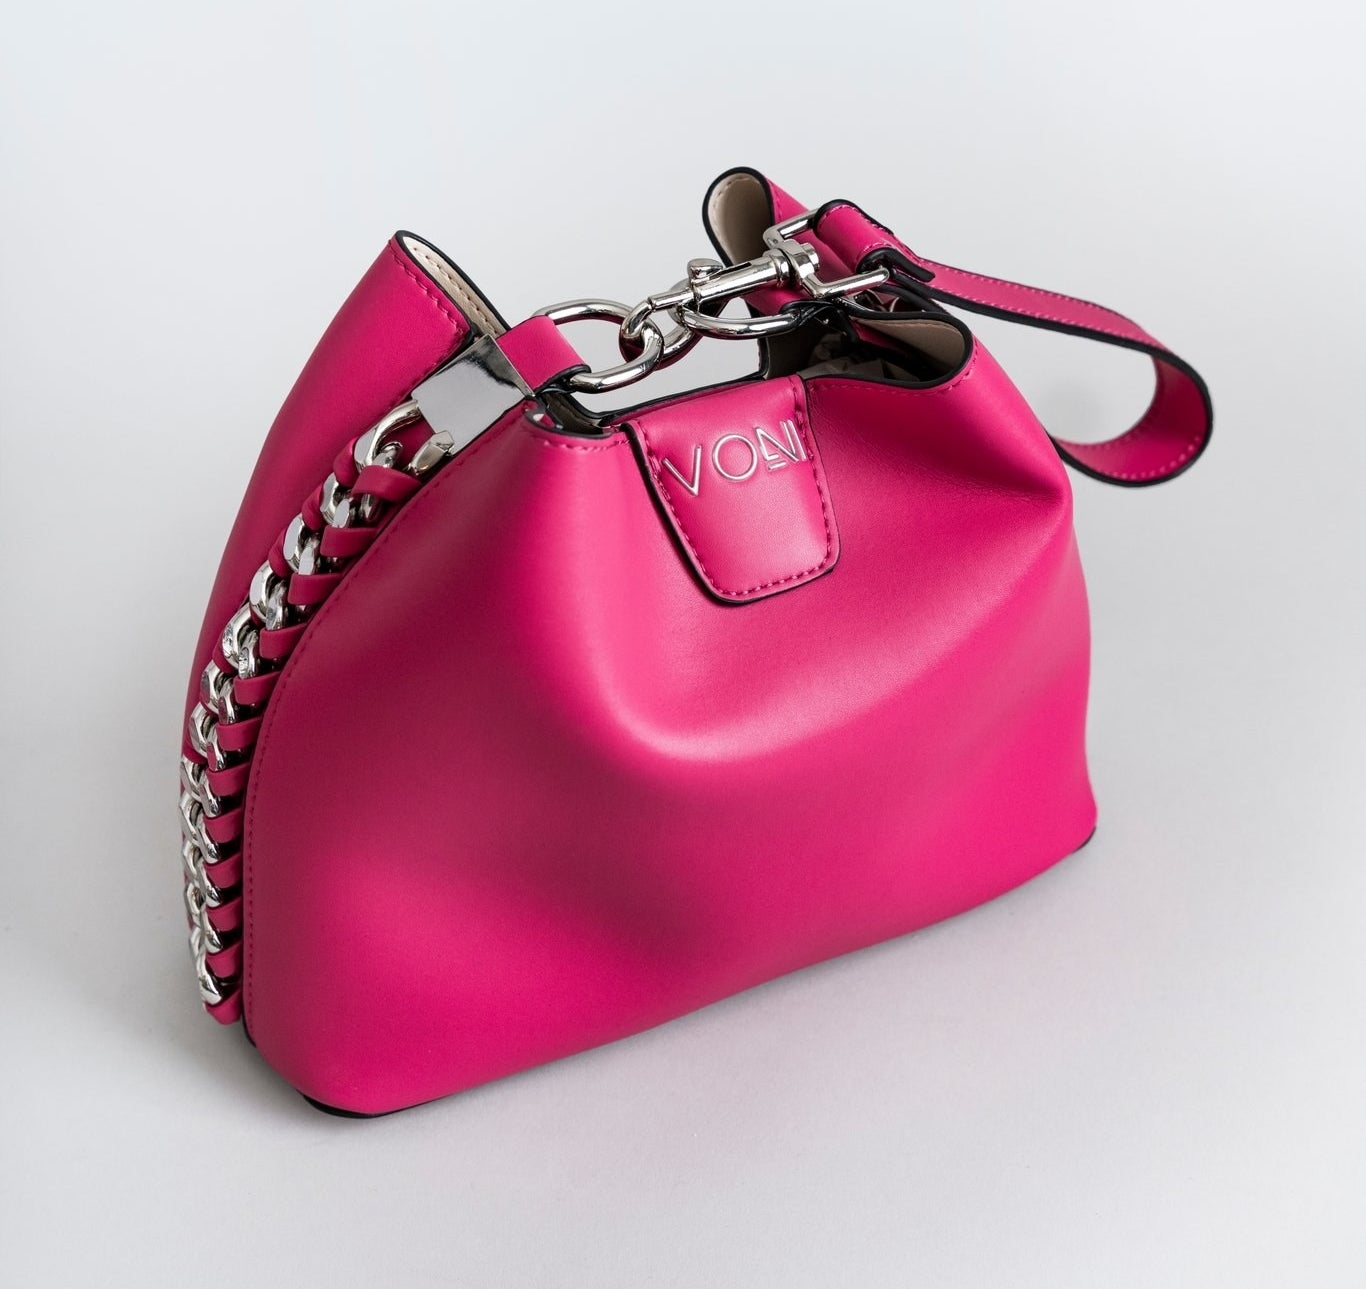 A pink and silver chain trimmed purse